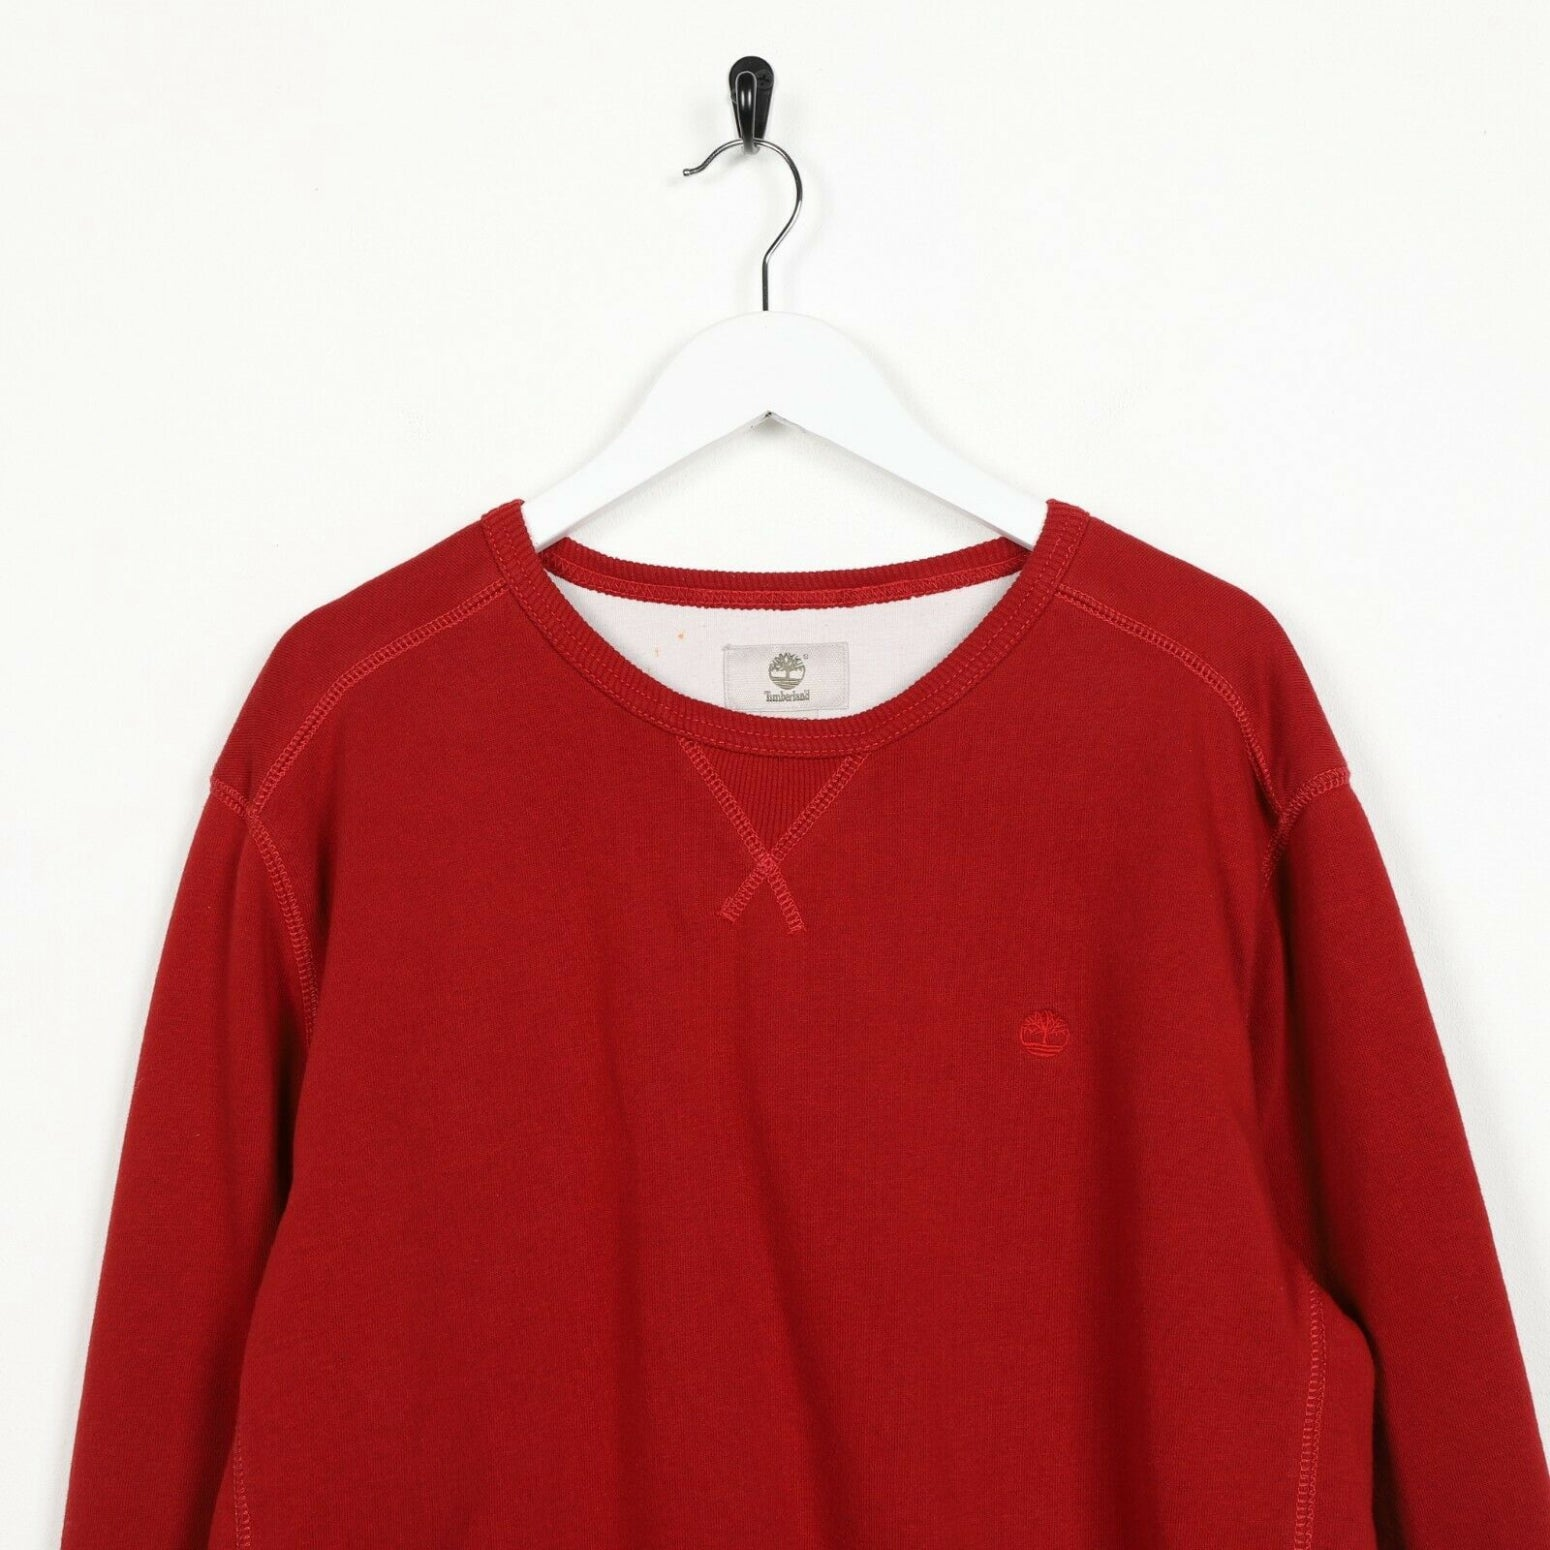 Vintage TIMBERLAND Small Logo Sweatshirt Jumper Red XL